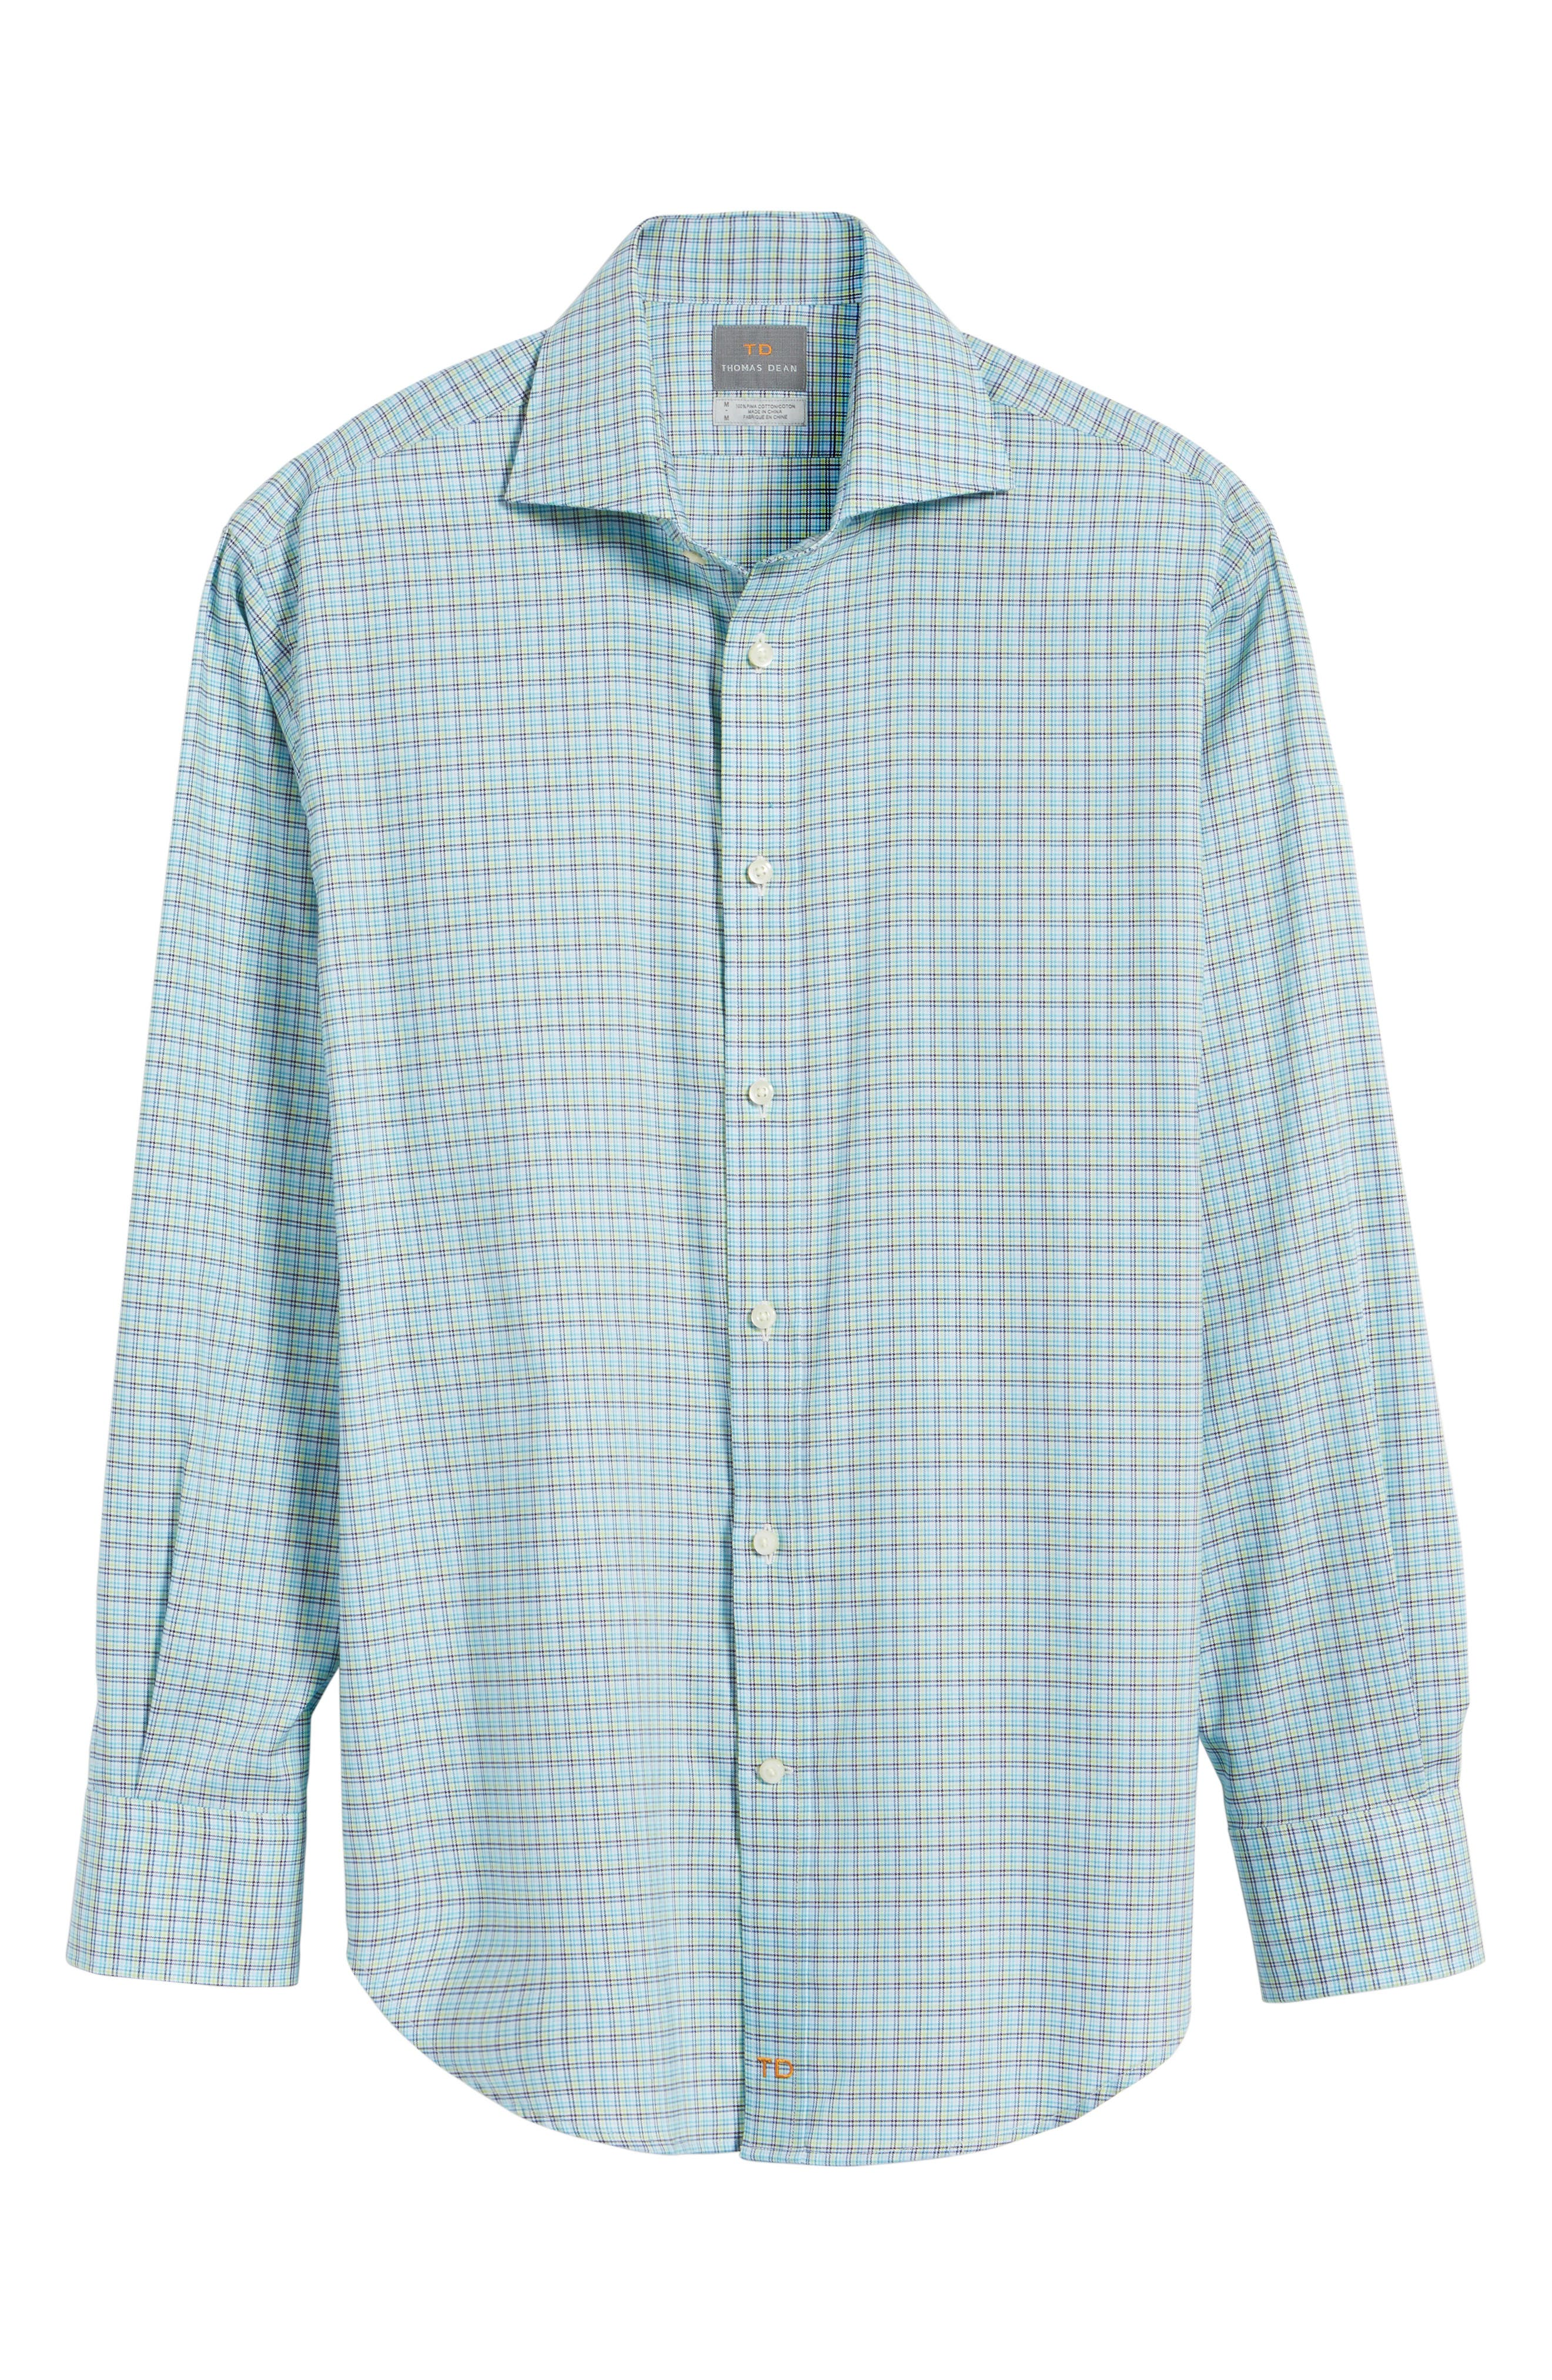 Classic Fit Textured Check Sport Shirt,                             Alternate thumbnail 6, color,                             340